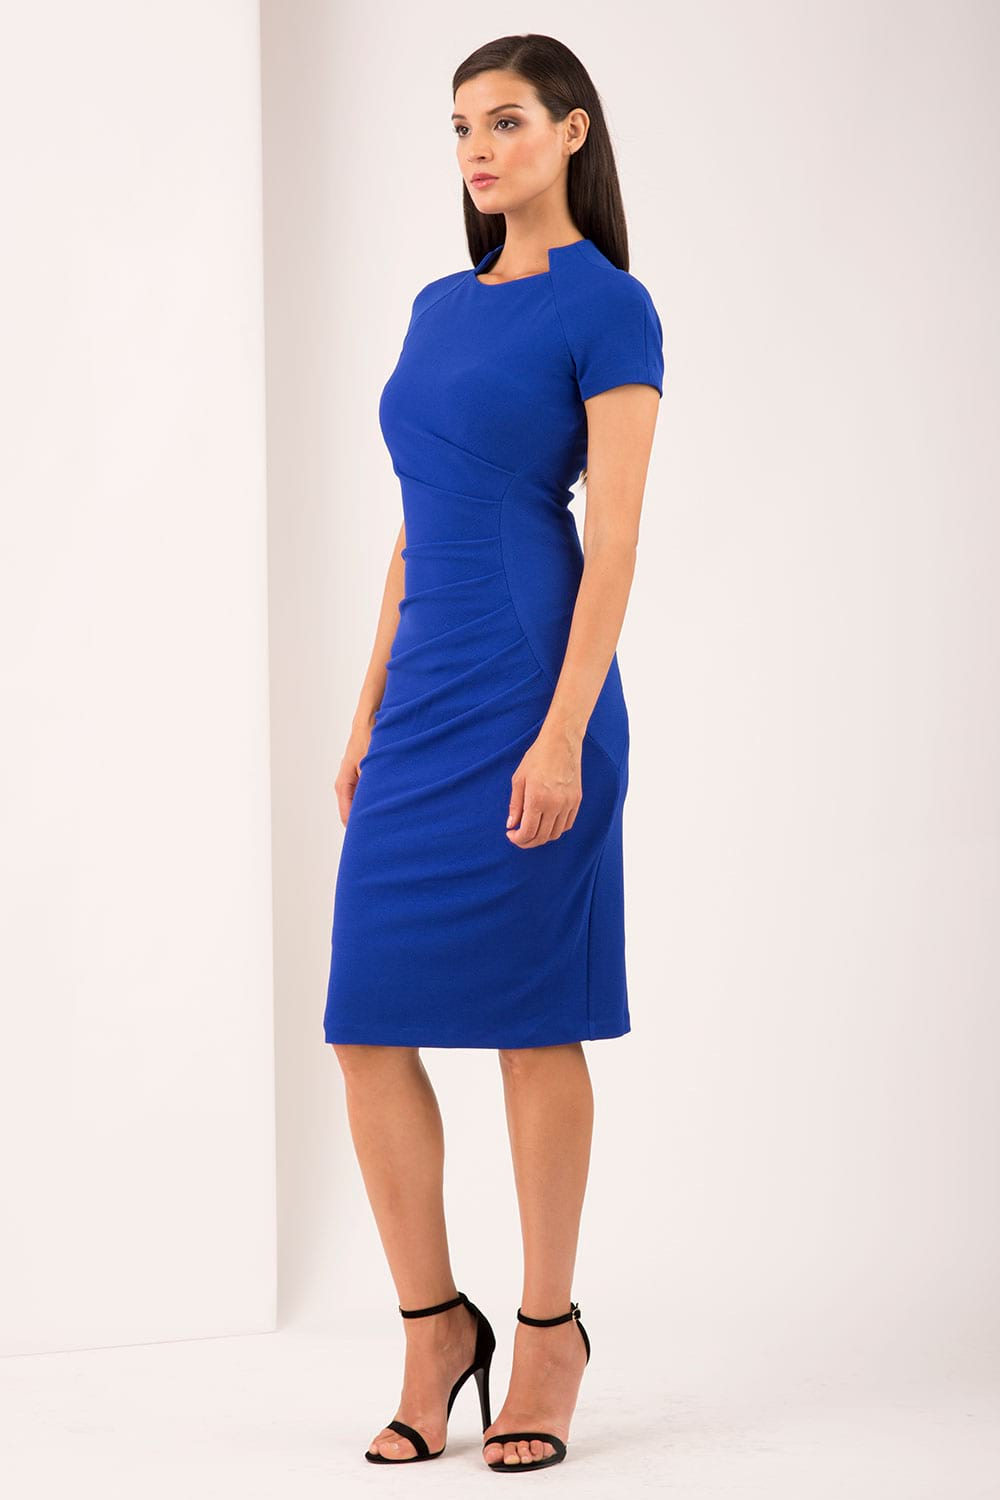 9ace79b0645 Hybrid Jourdan High Neck Pencil Dress - Hybrid Fashion